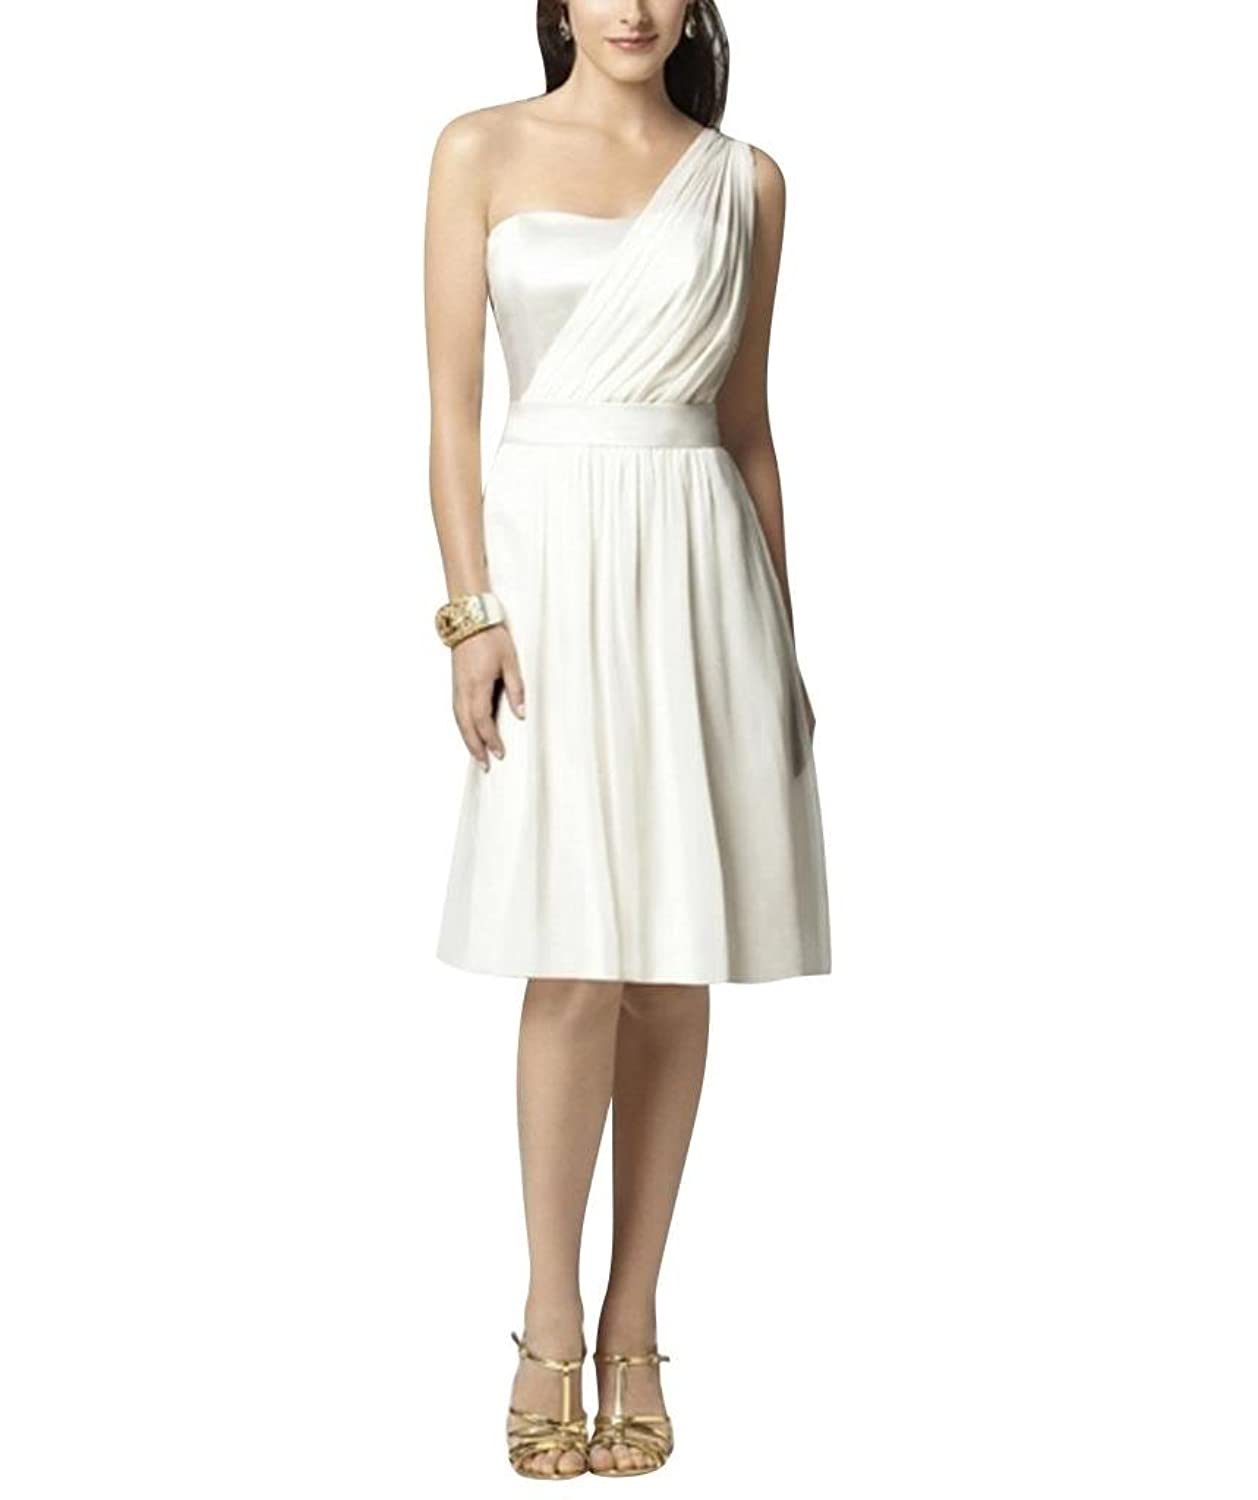 GEORGE BRIDE One Shoulder White Knee Length Evening Dress